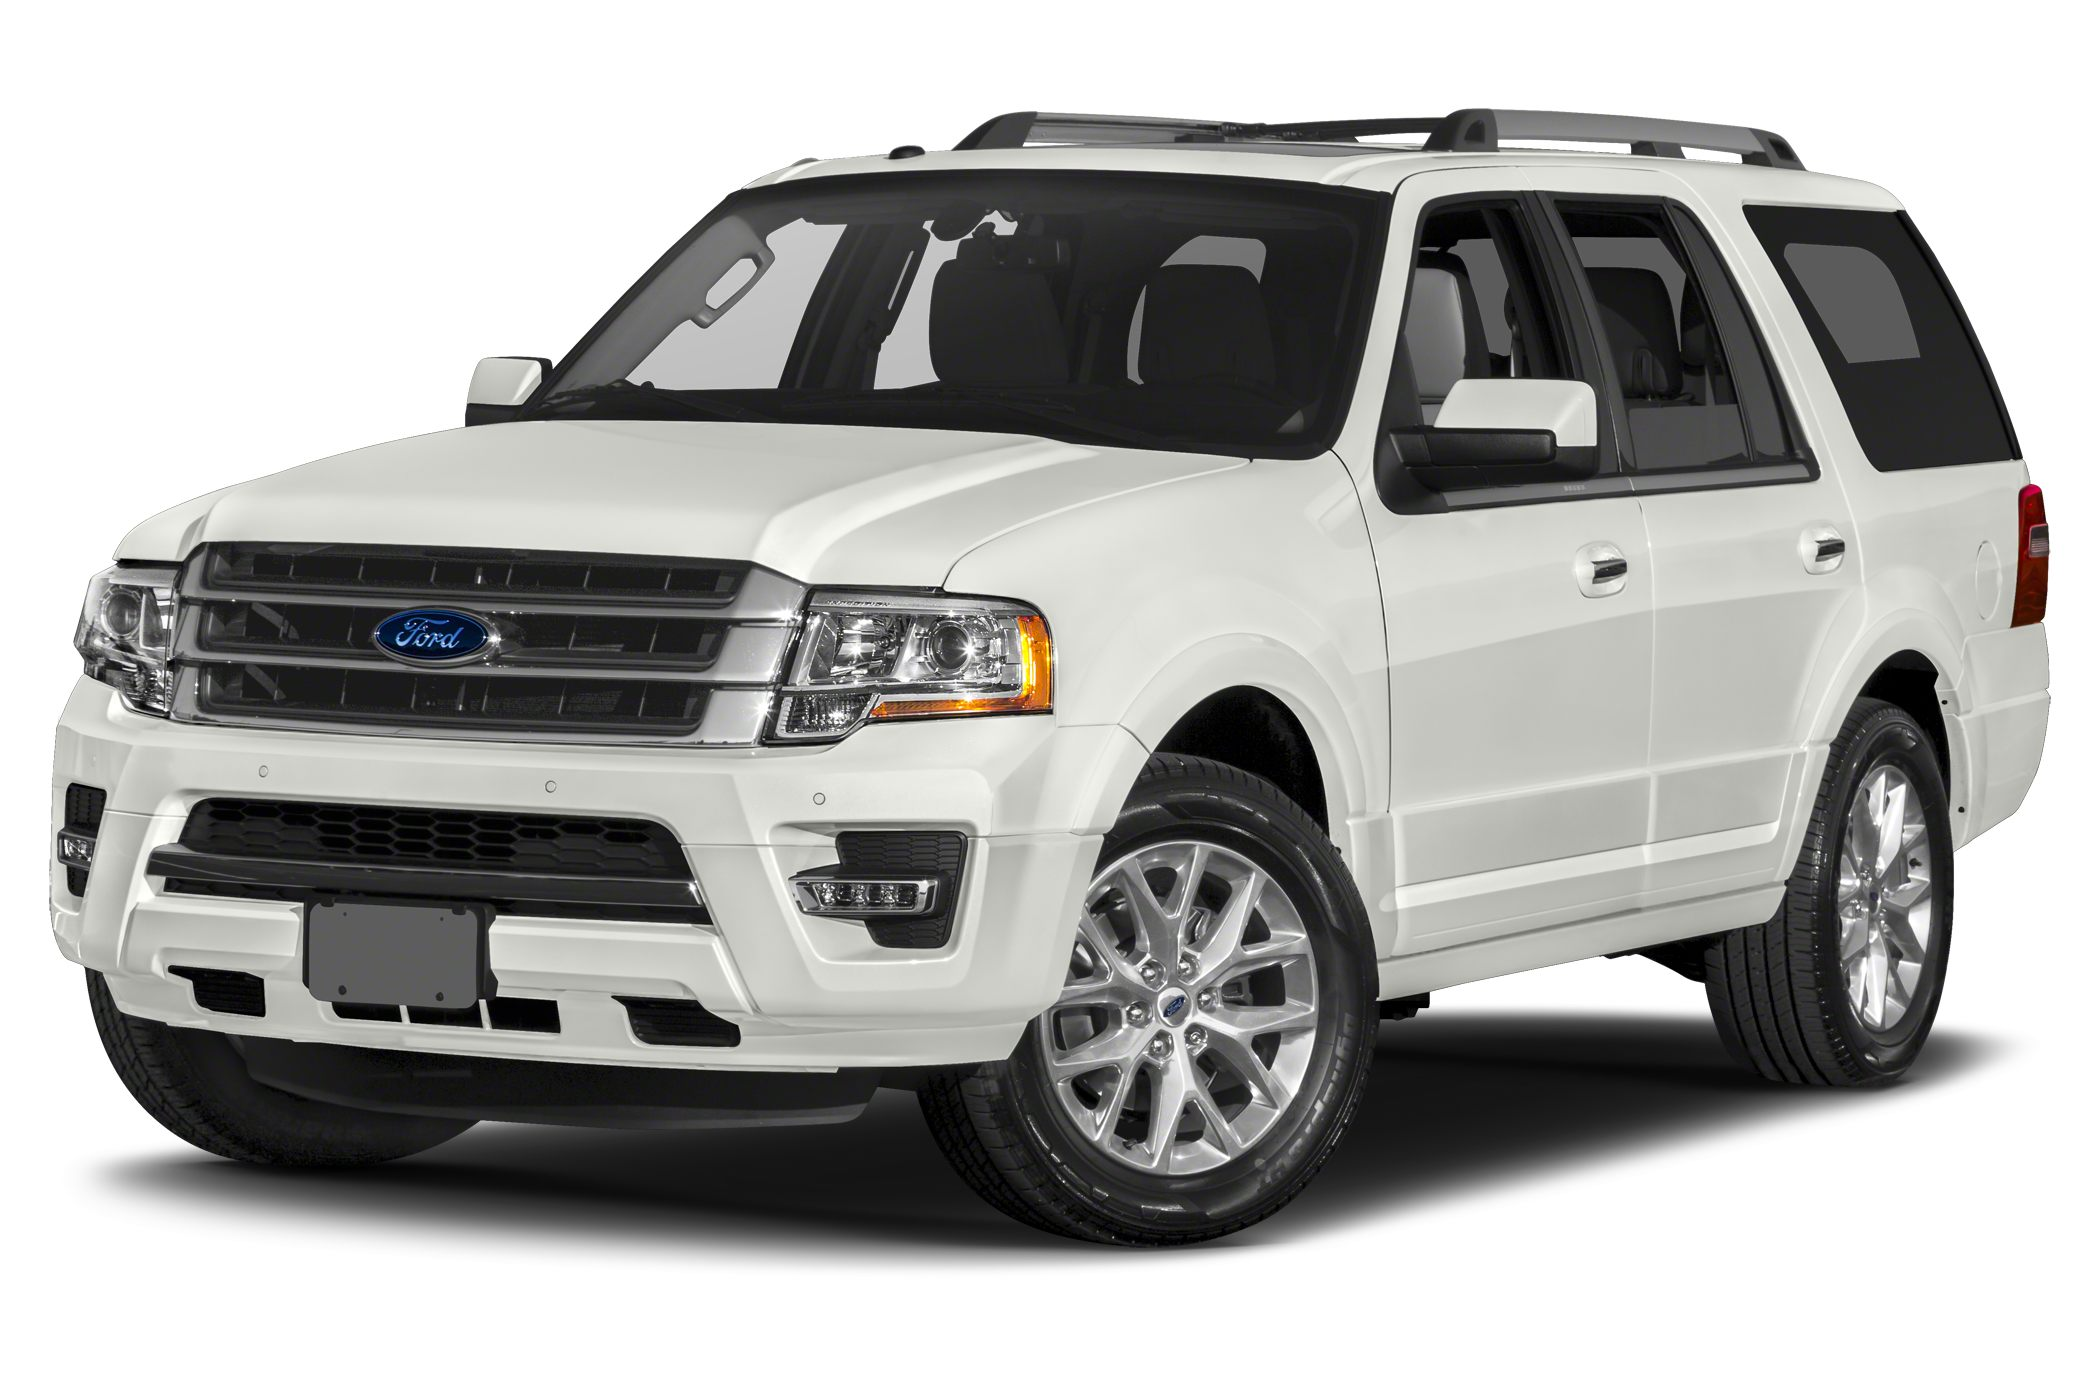 2017 Chevrolet Suburban Vs Ford Expedition And